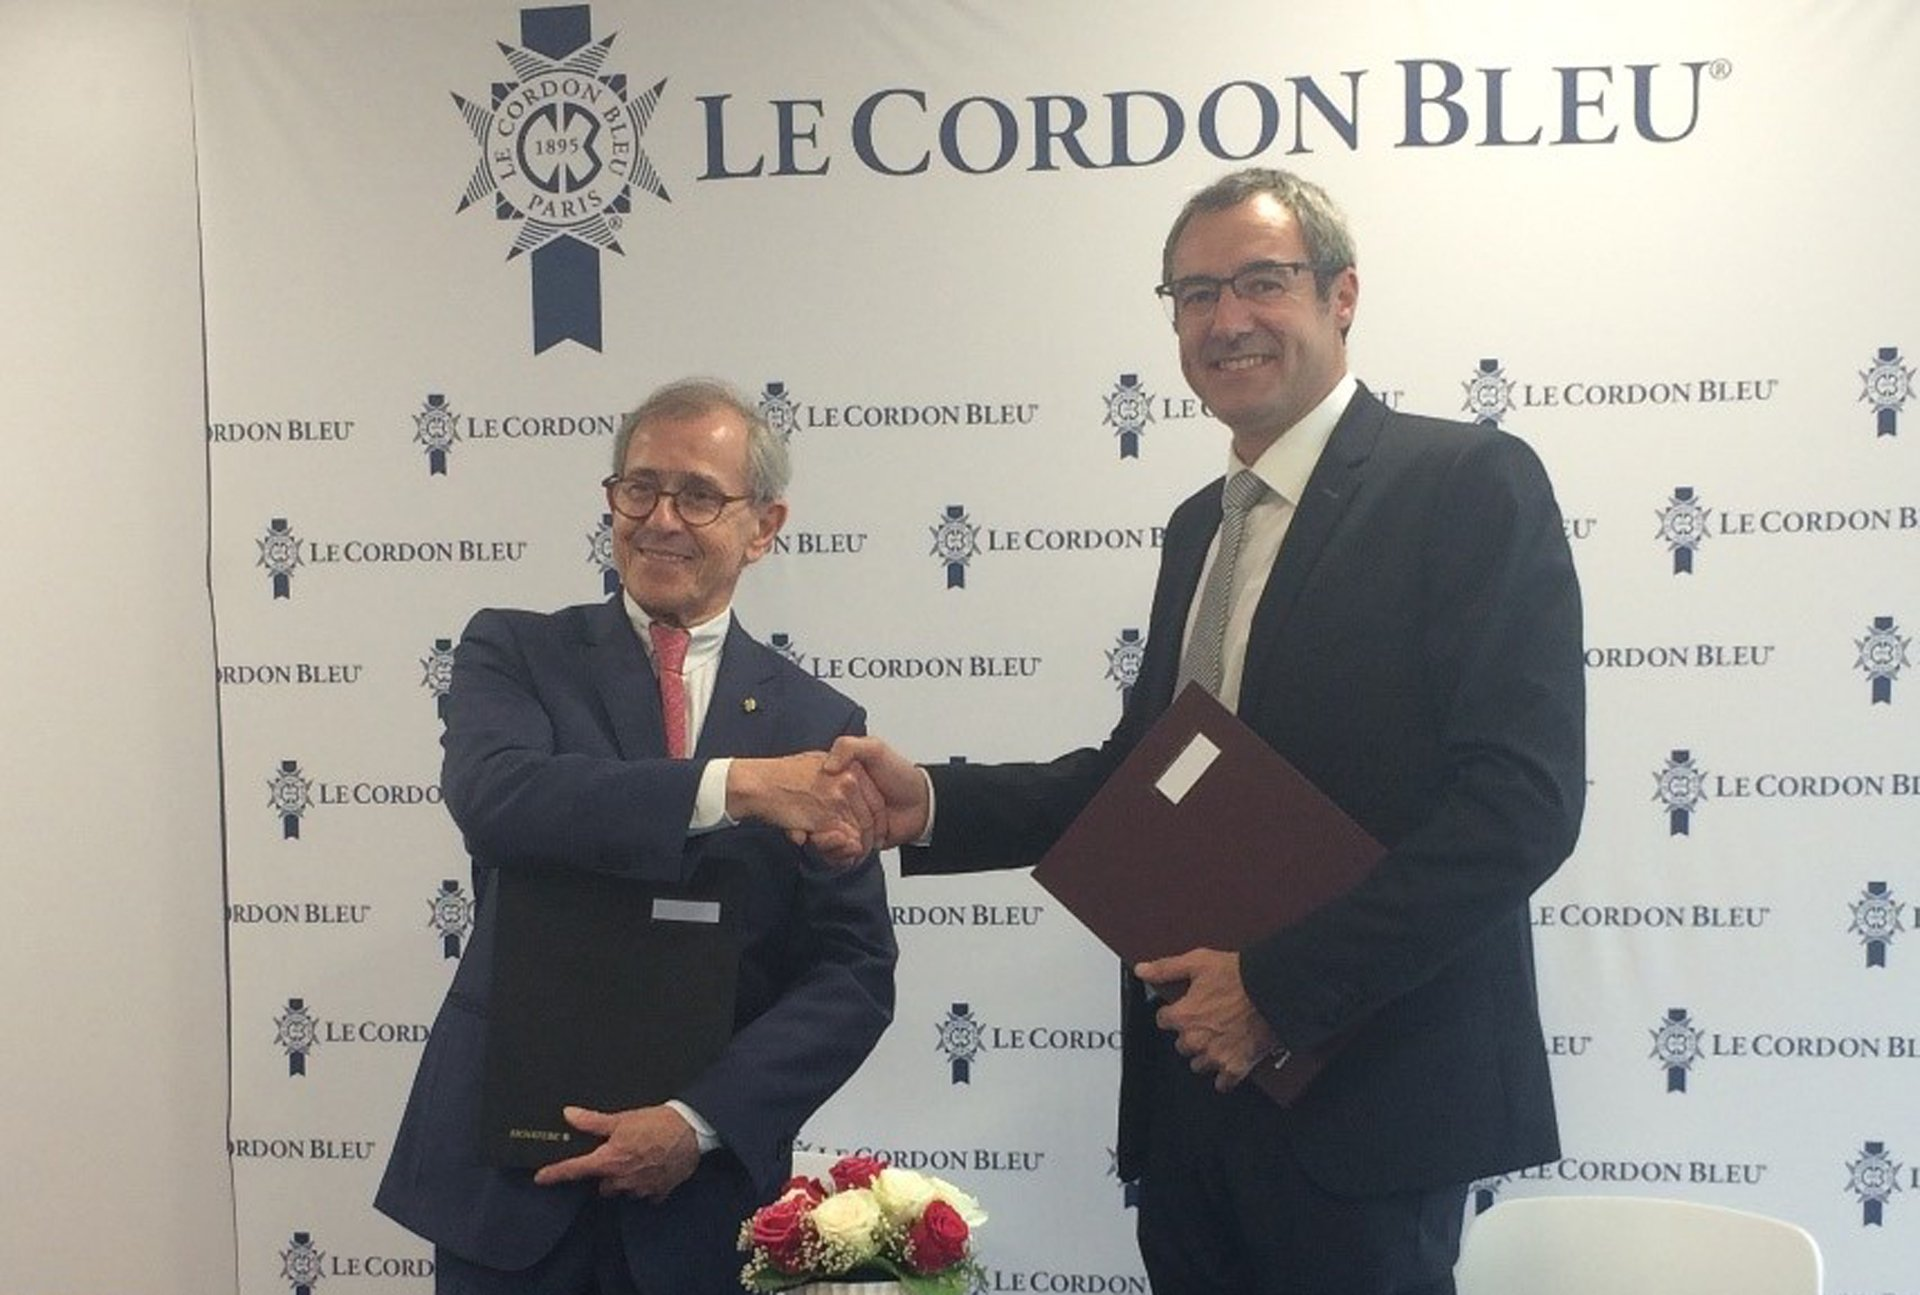 Bv Reims Le Cordon Bleu Signs A Partnership Agreement With The University